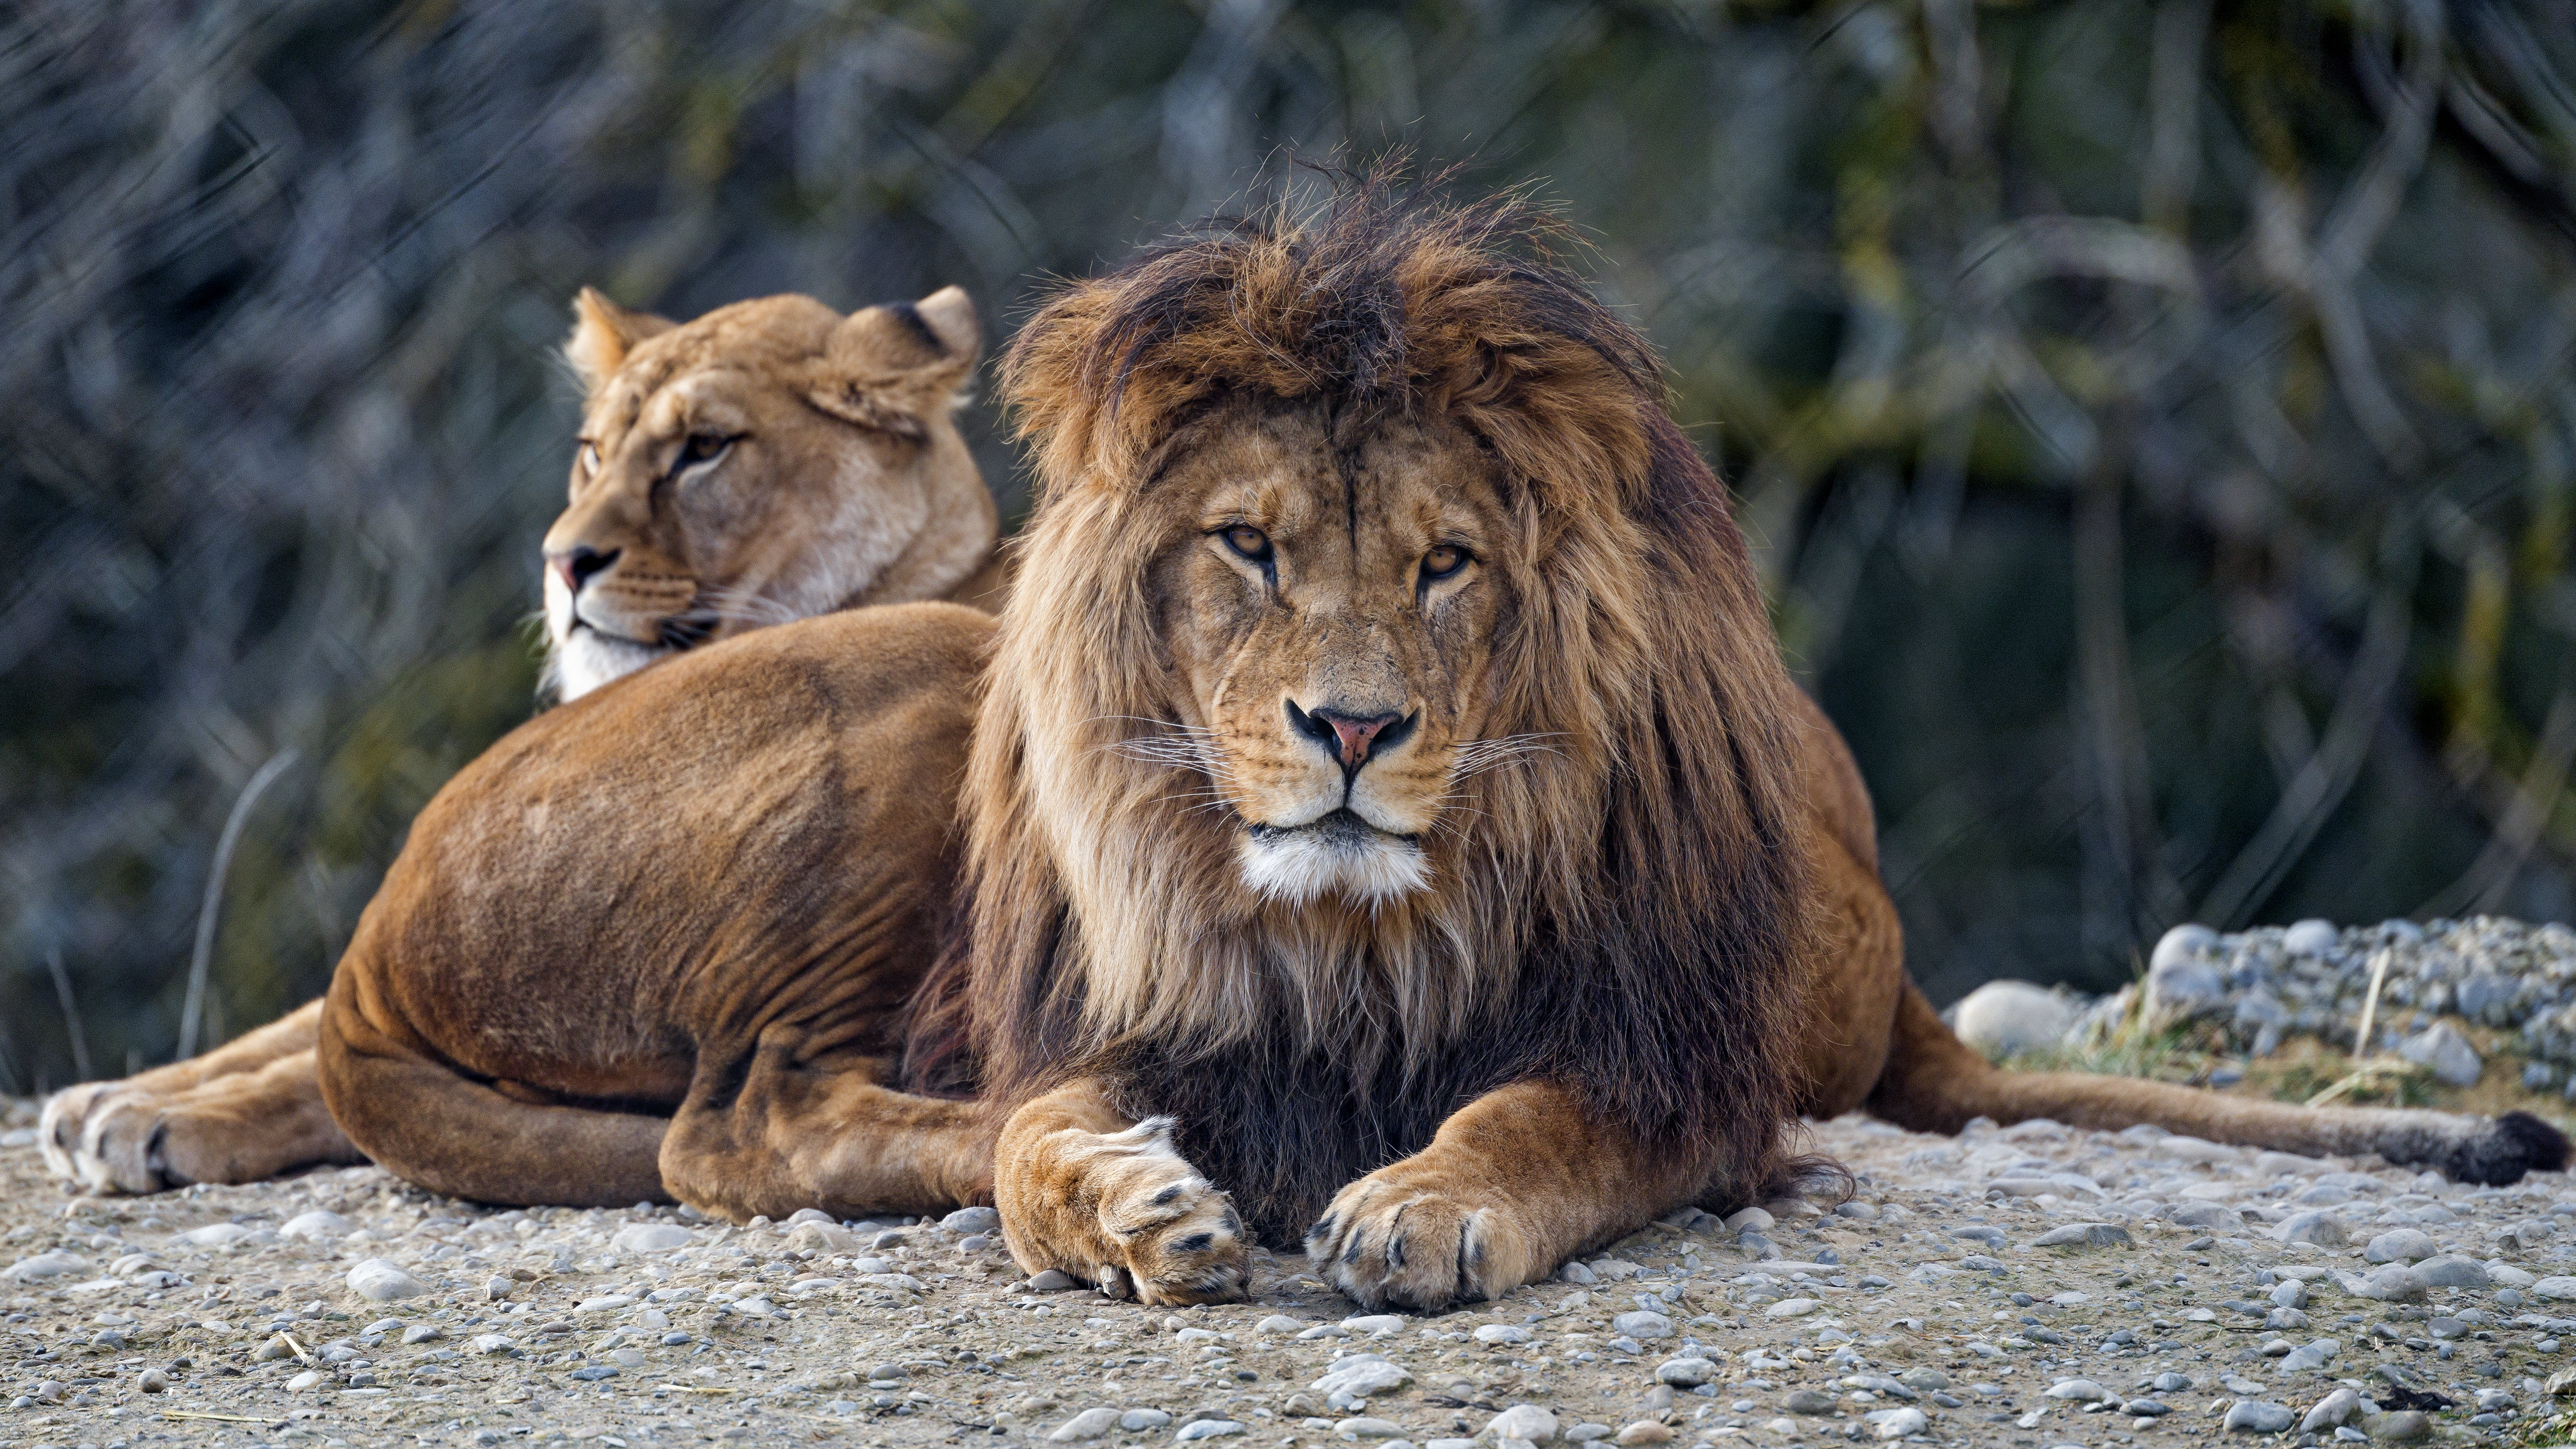 99261 download wallpaper Animals, Lion, Predator, Sight, Opinion, Big Cat, Muzzle screensavers and pictures for free